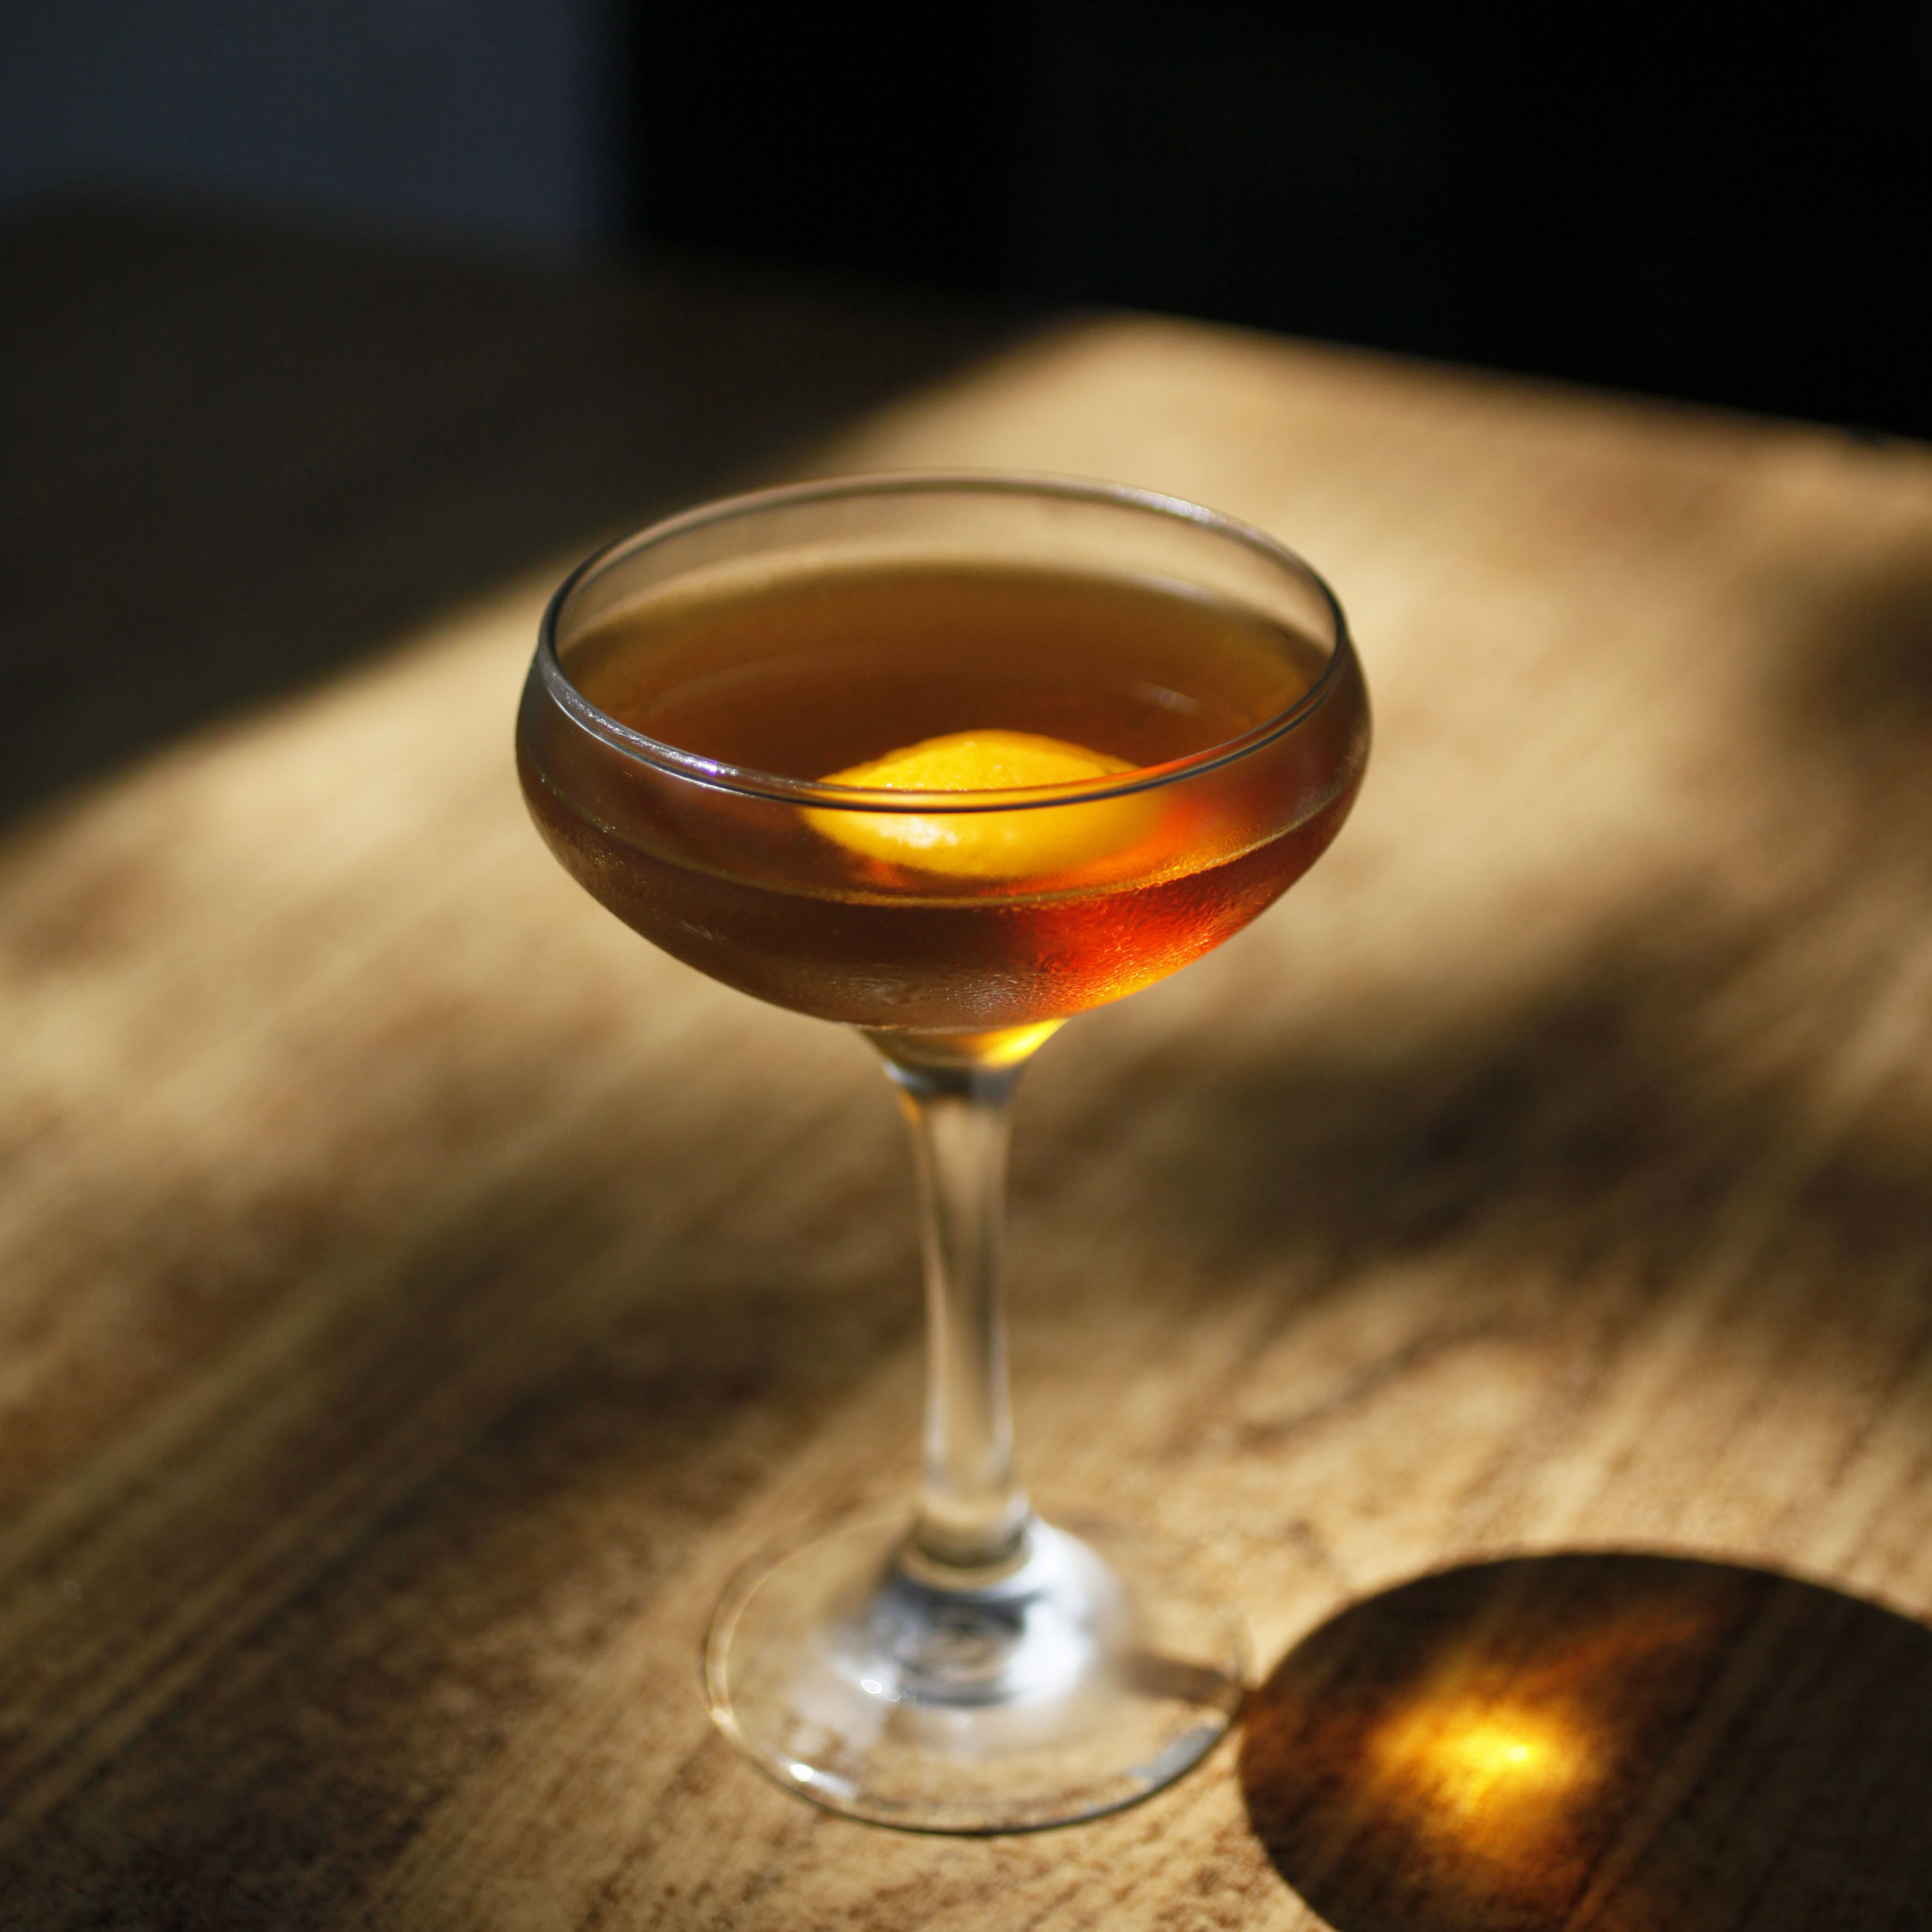 Cocktail_003.jpg